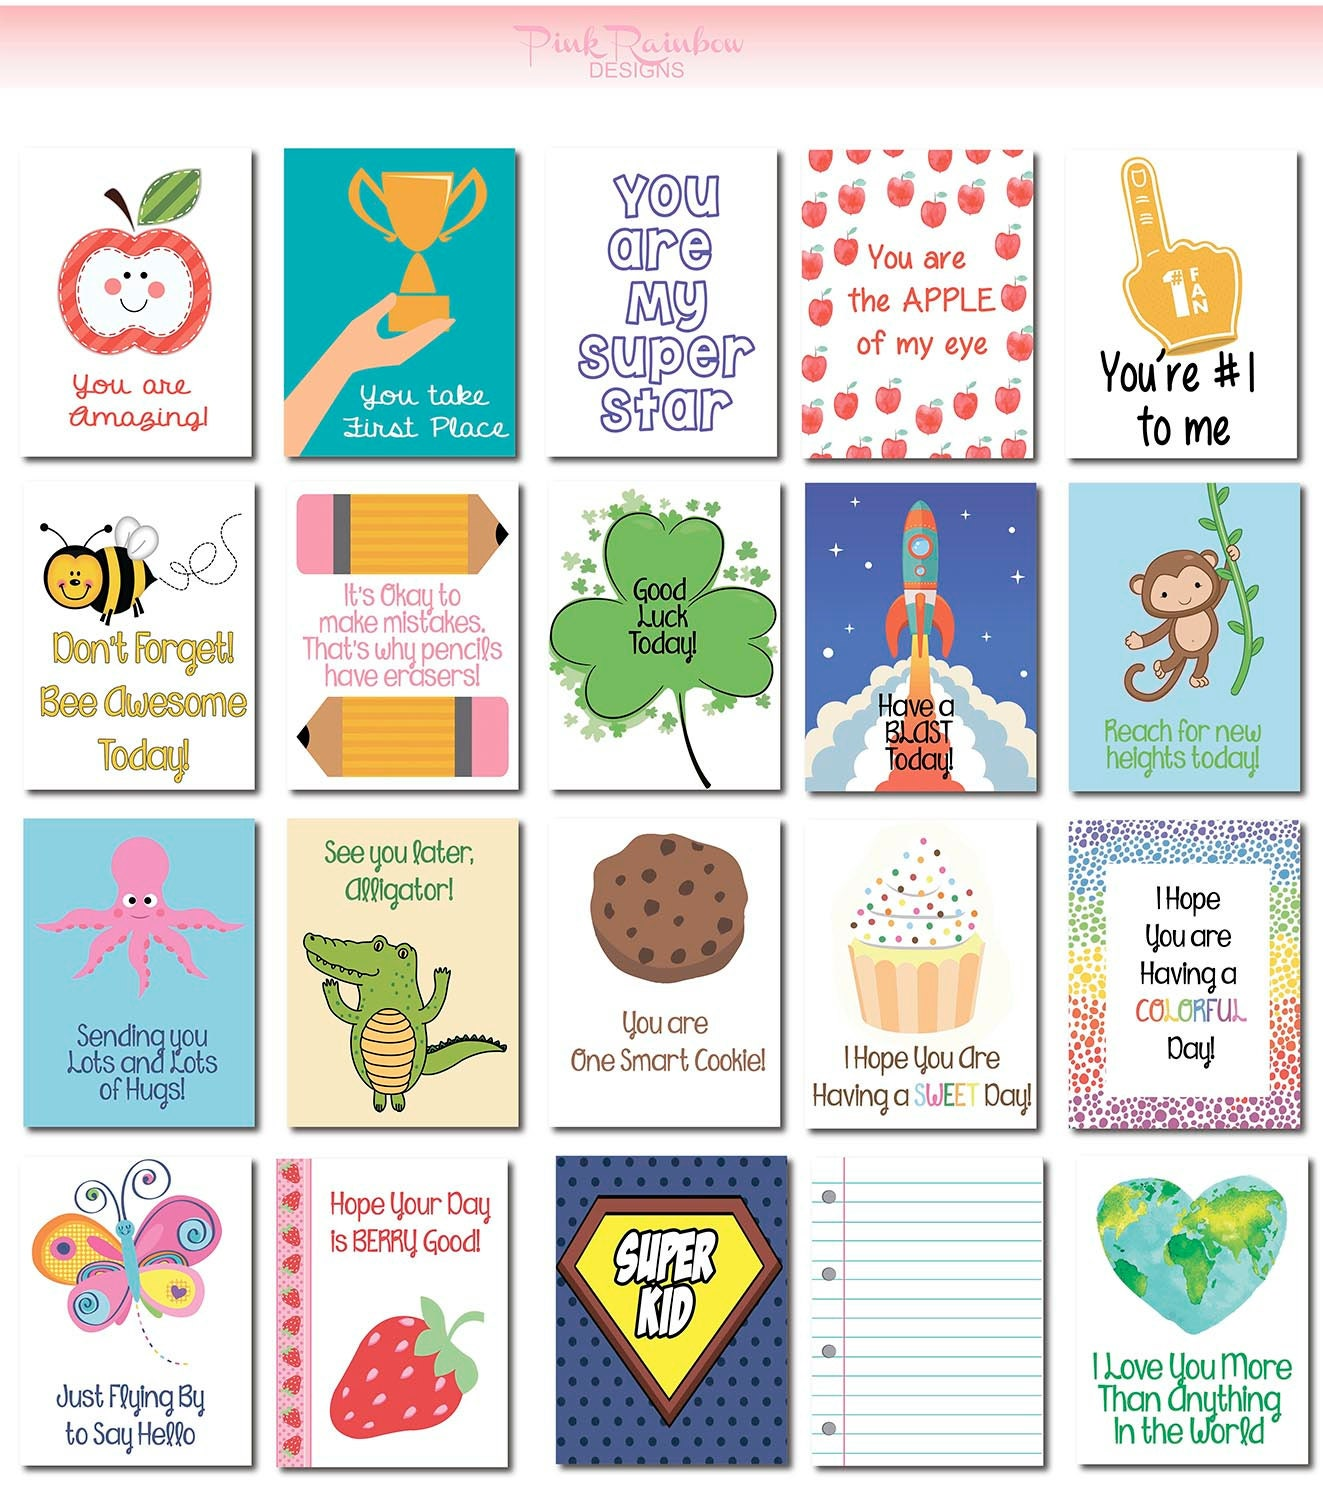 Motivational Messages 20 Lunch Box Notes Cards With Motivational Messages For Kids